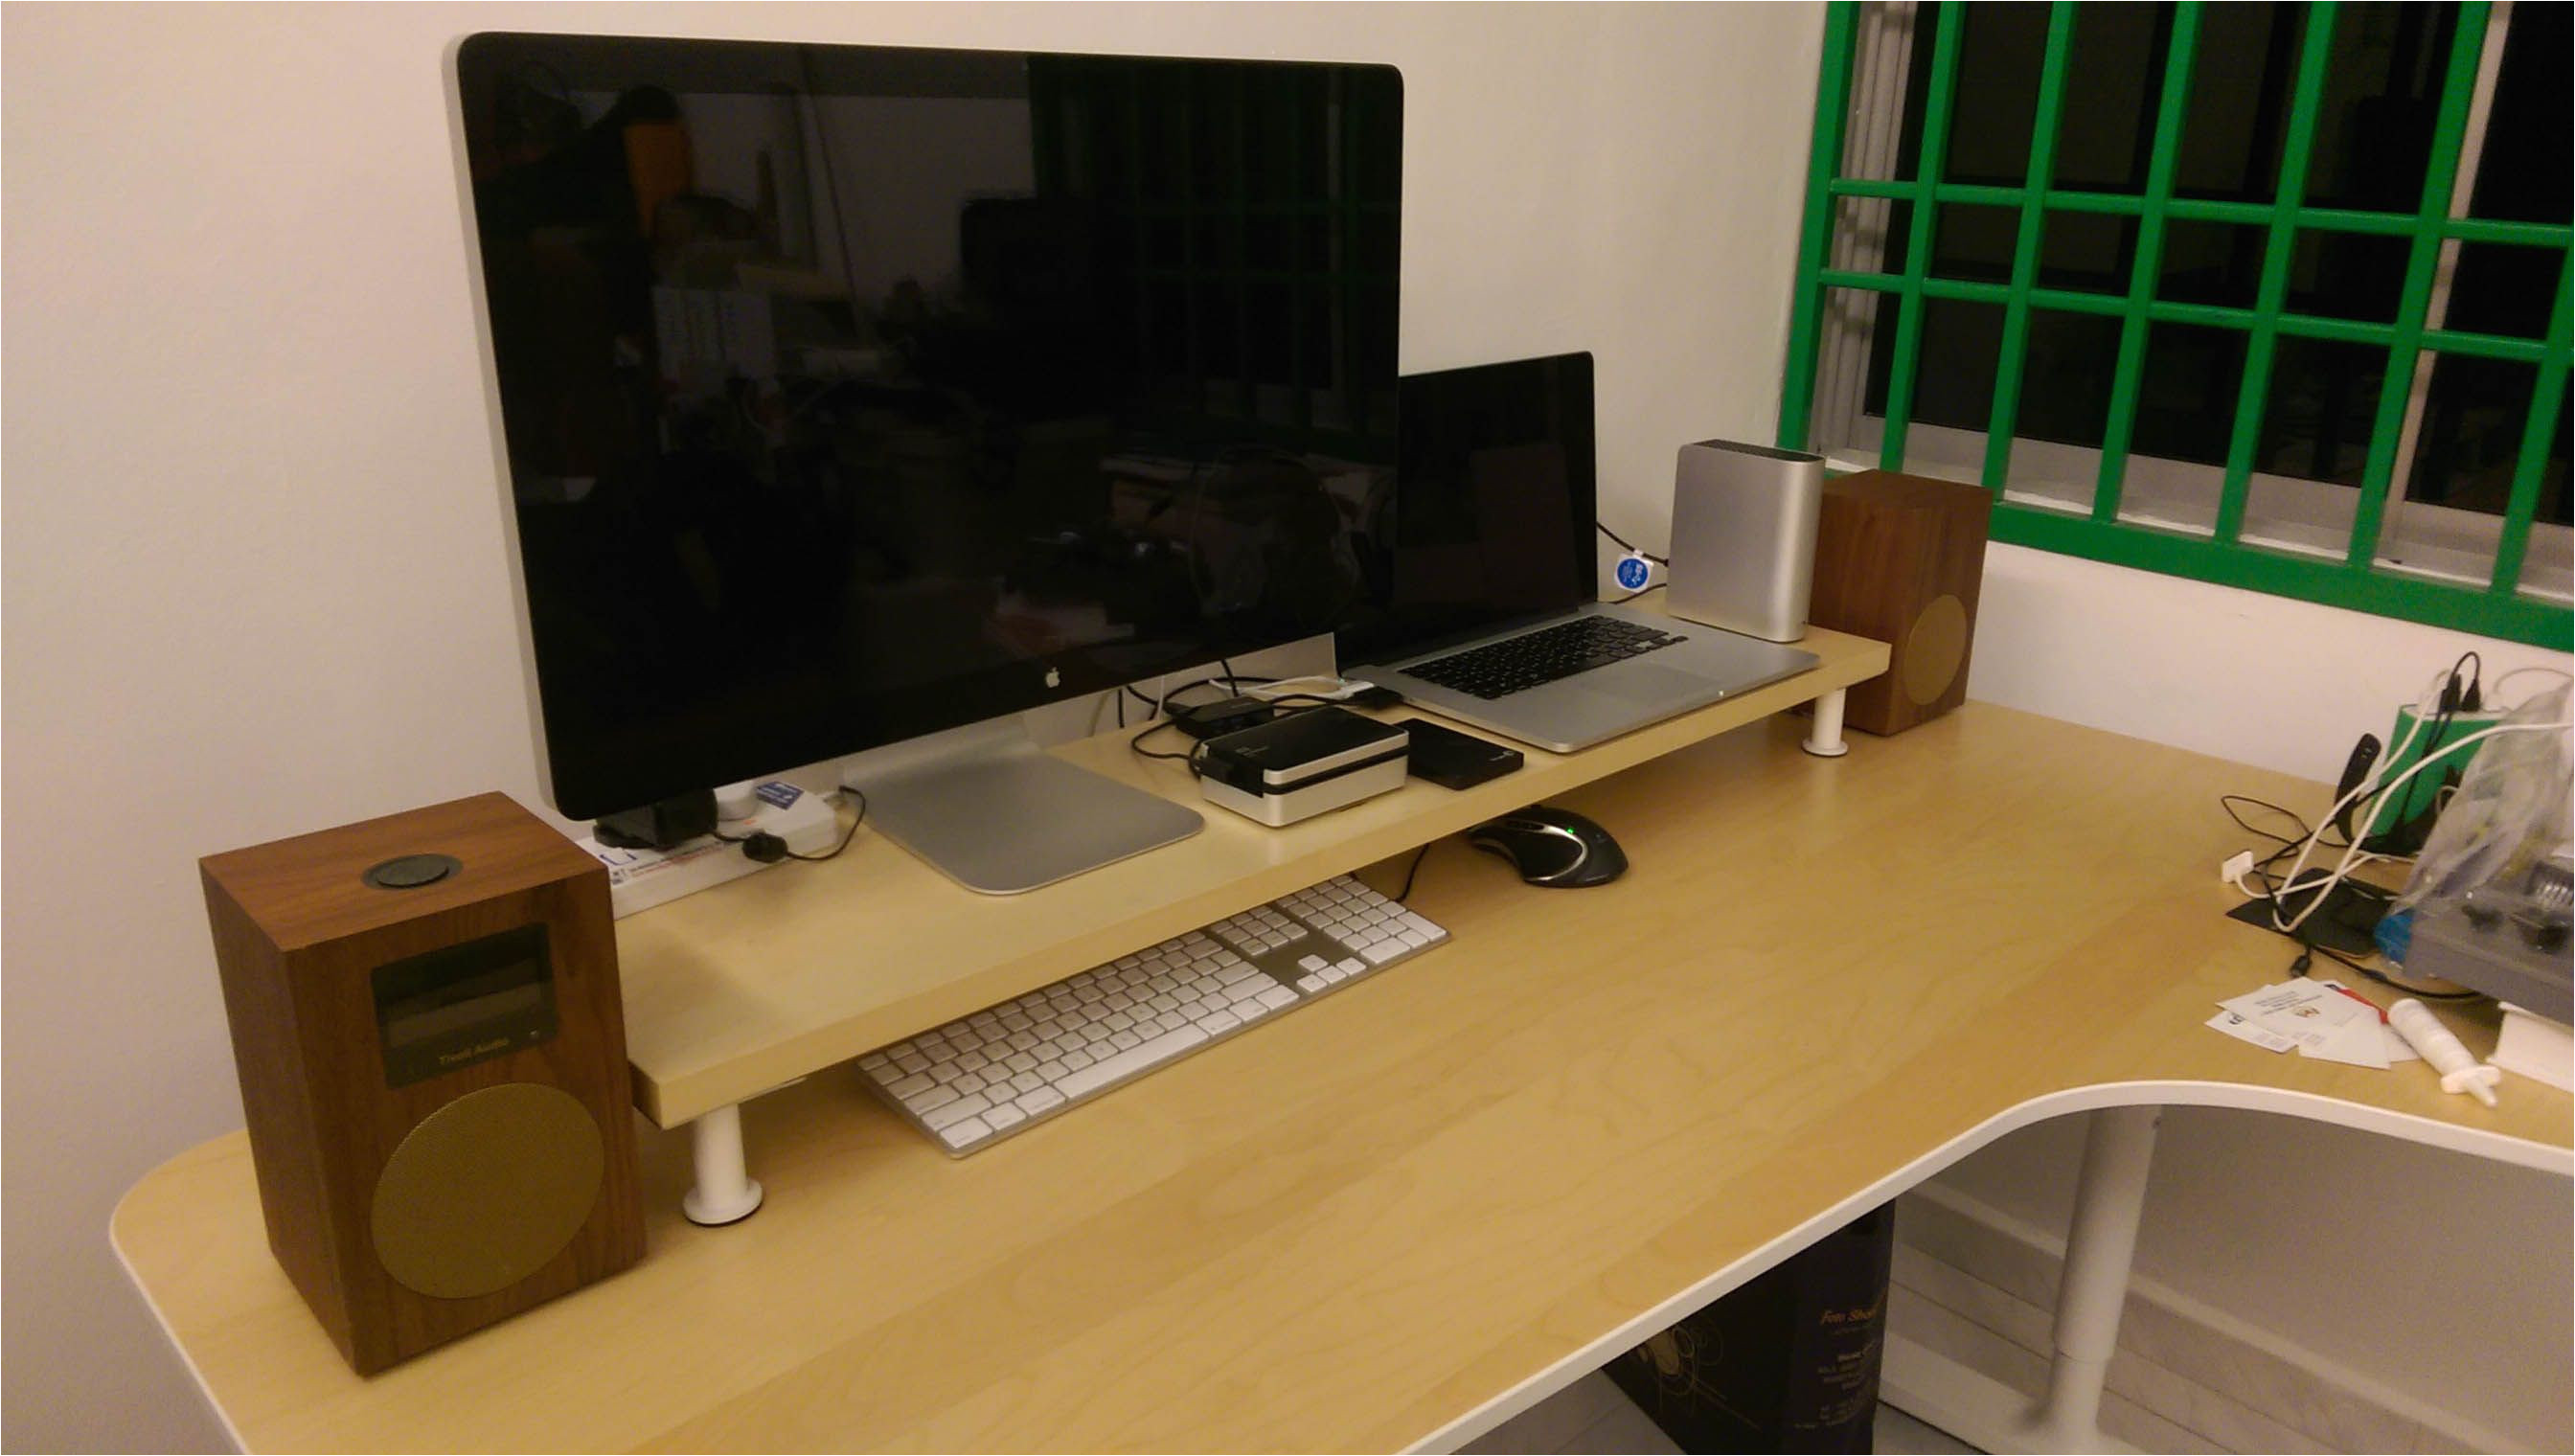 diy ikea desk shelf monitor stand parts 1 x ekby ja rpen 119x28 birch veneer 6 x capita legs 8 9cm white